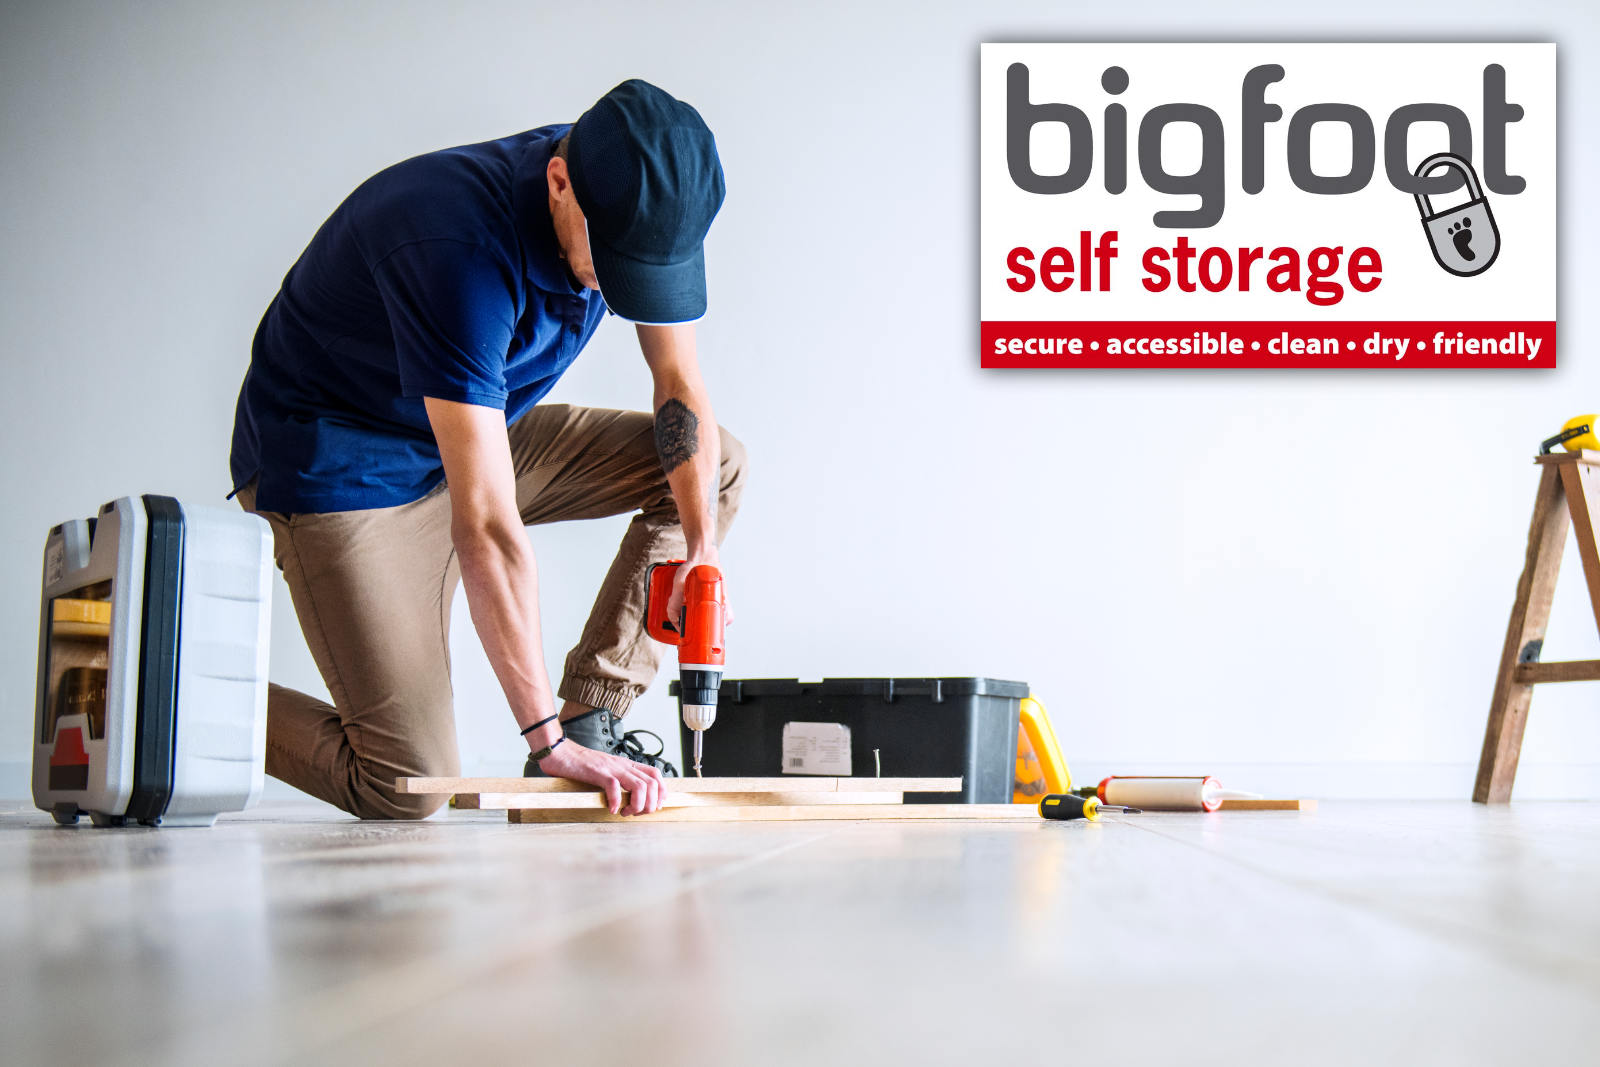 Self storage for home renovations